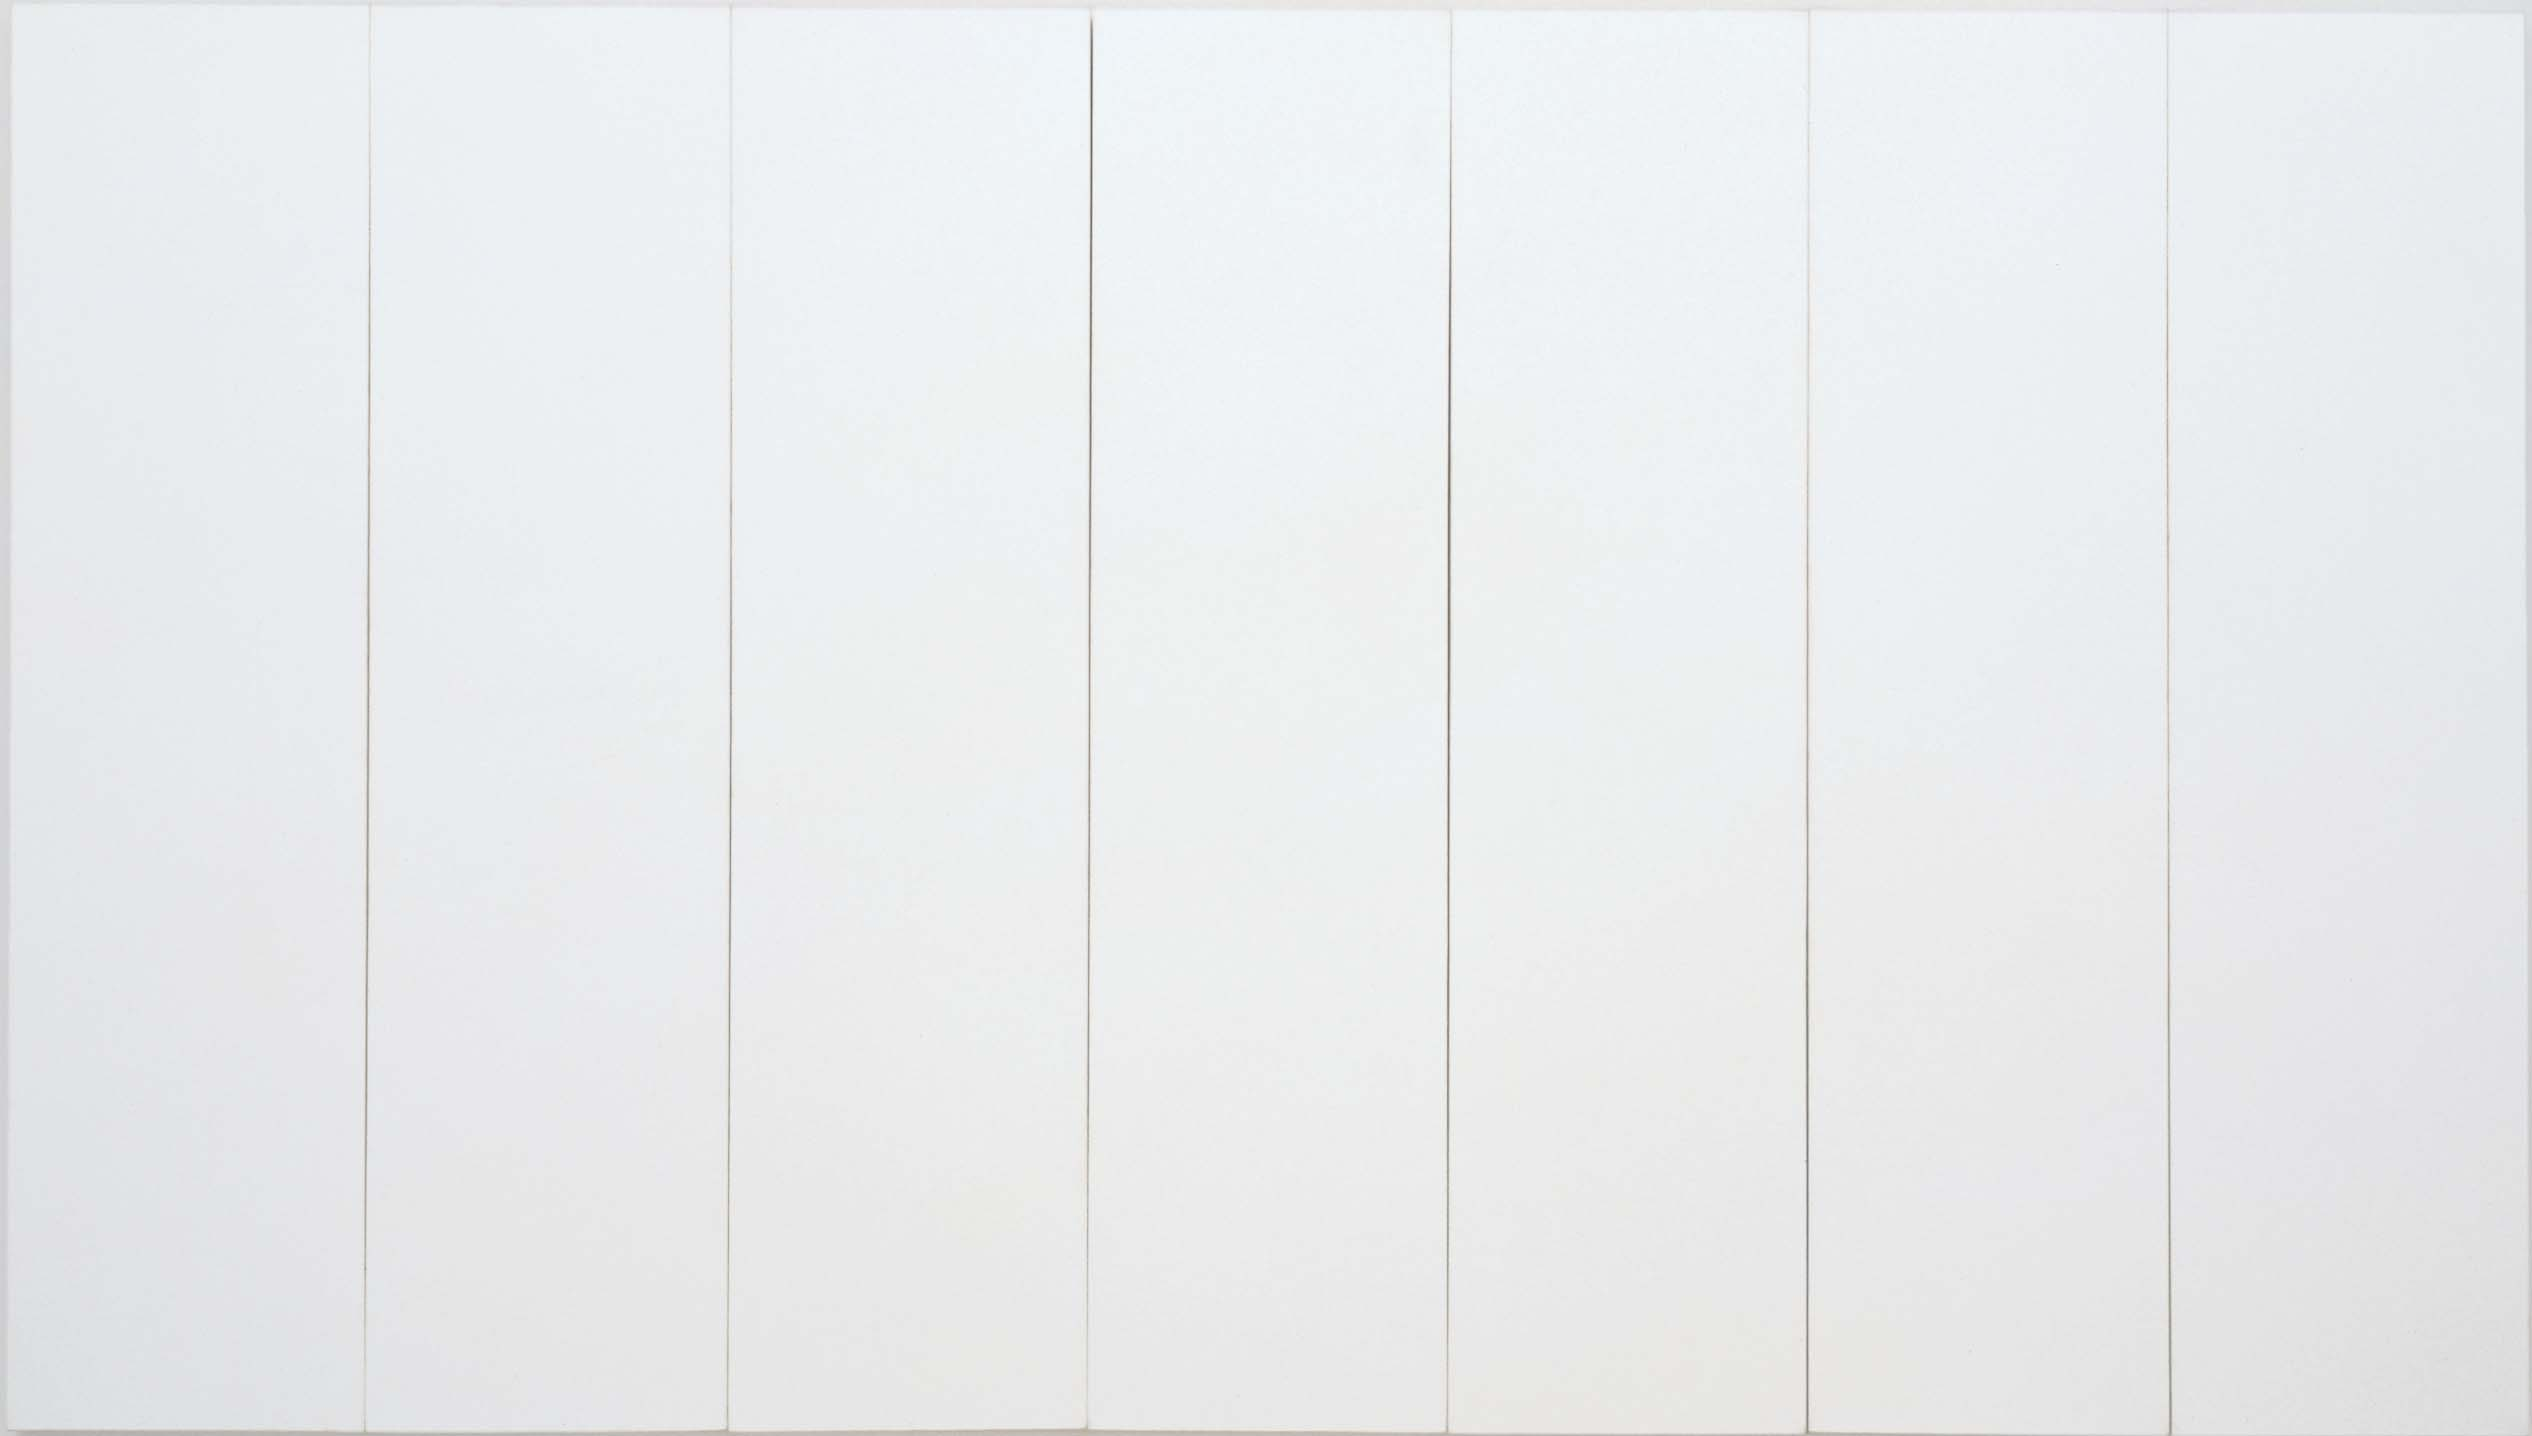 Robert Rauschenberg, White Painting (Seven Panel), 1951